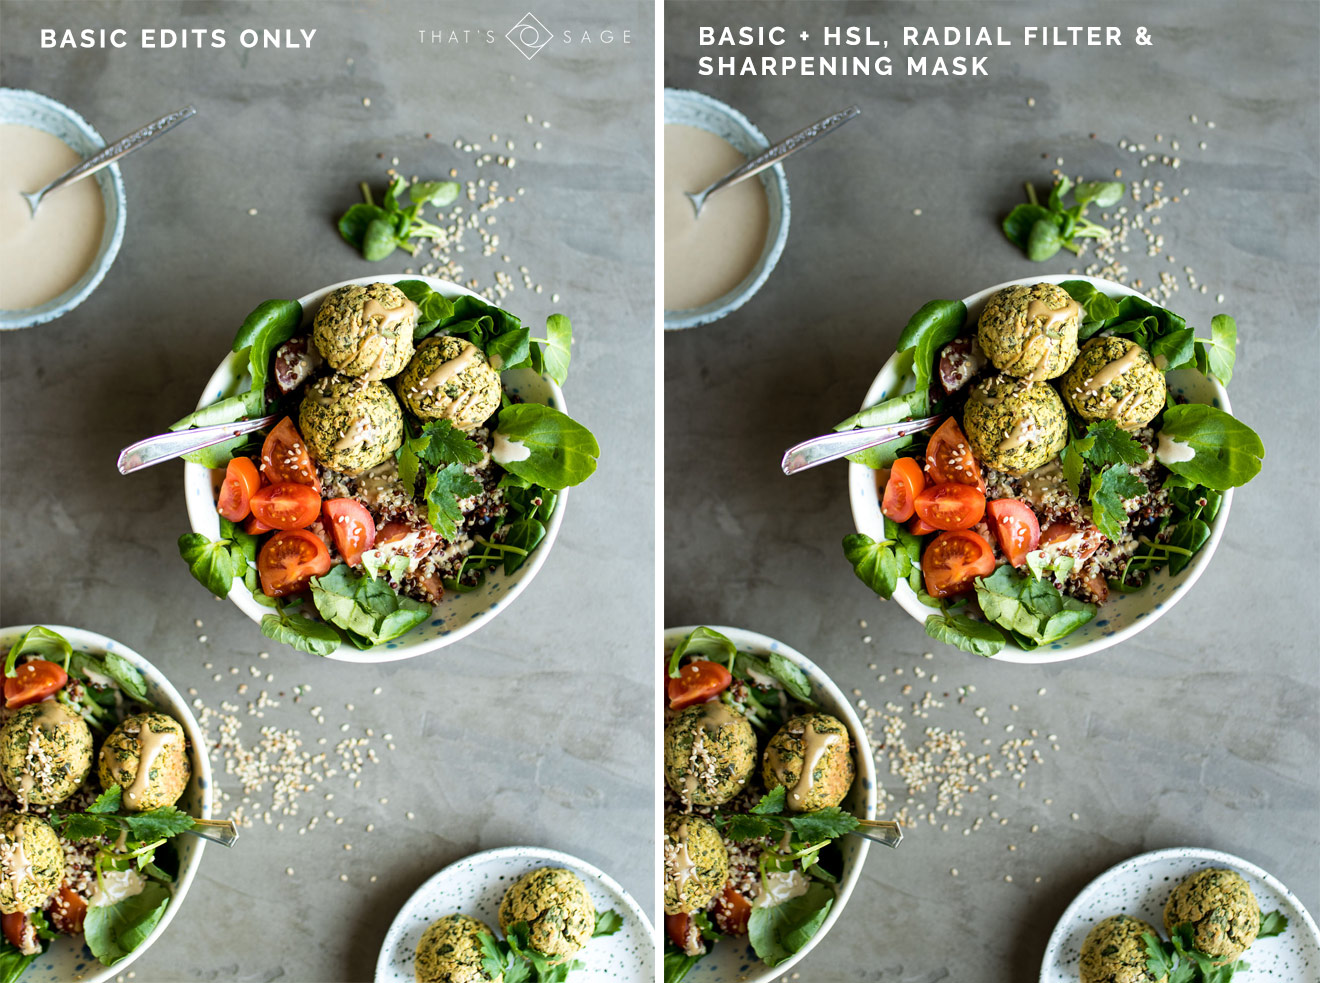 3 Adobe Lightroom Hacks that will Revolutionise your Food Photography Editing